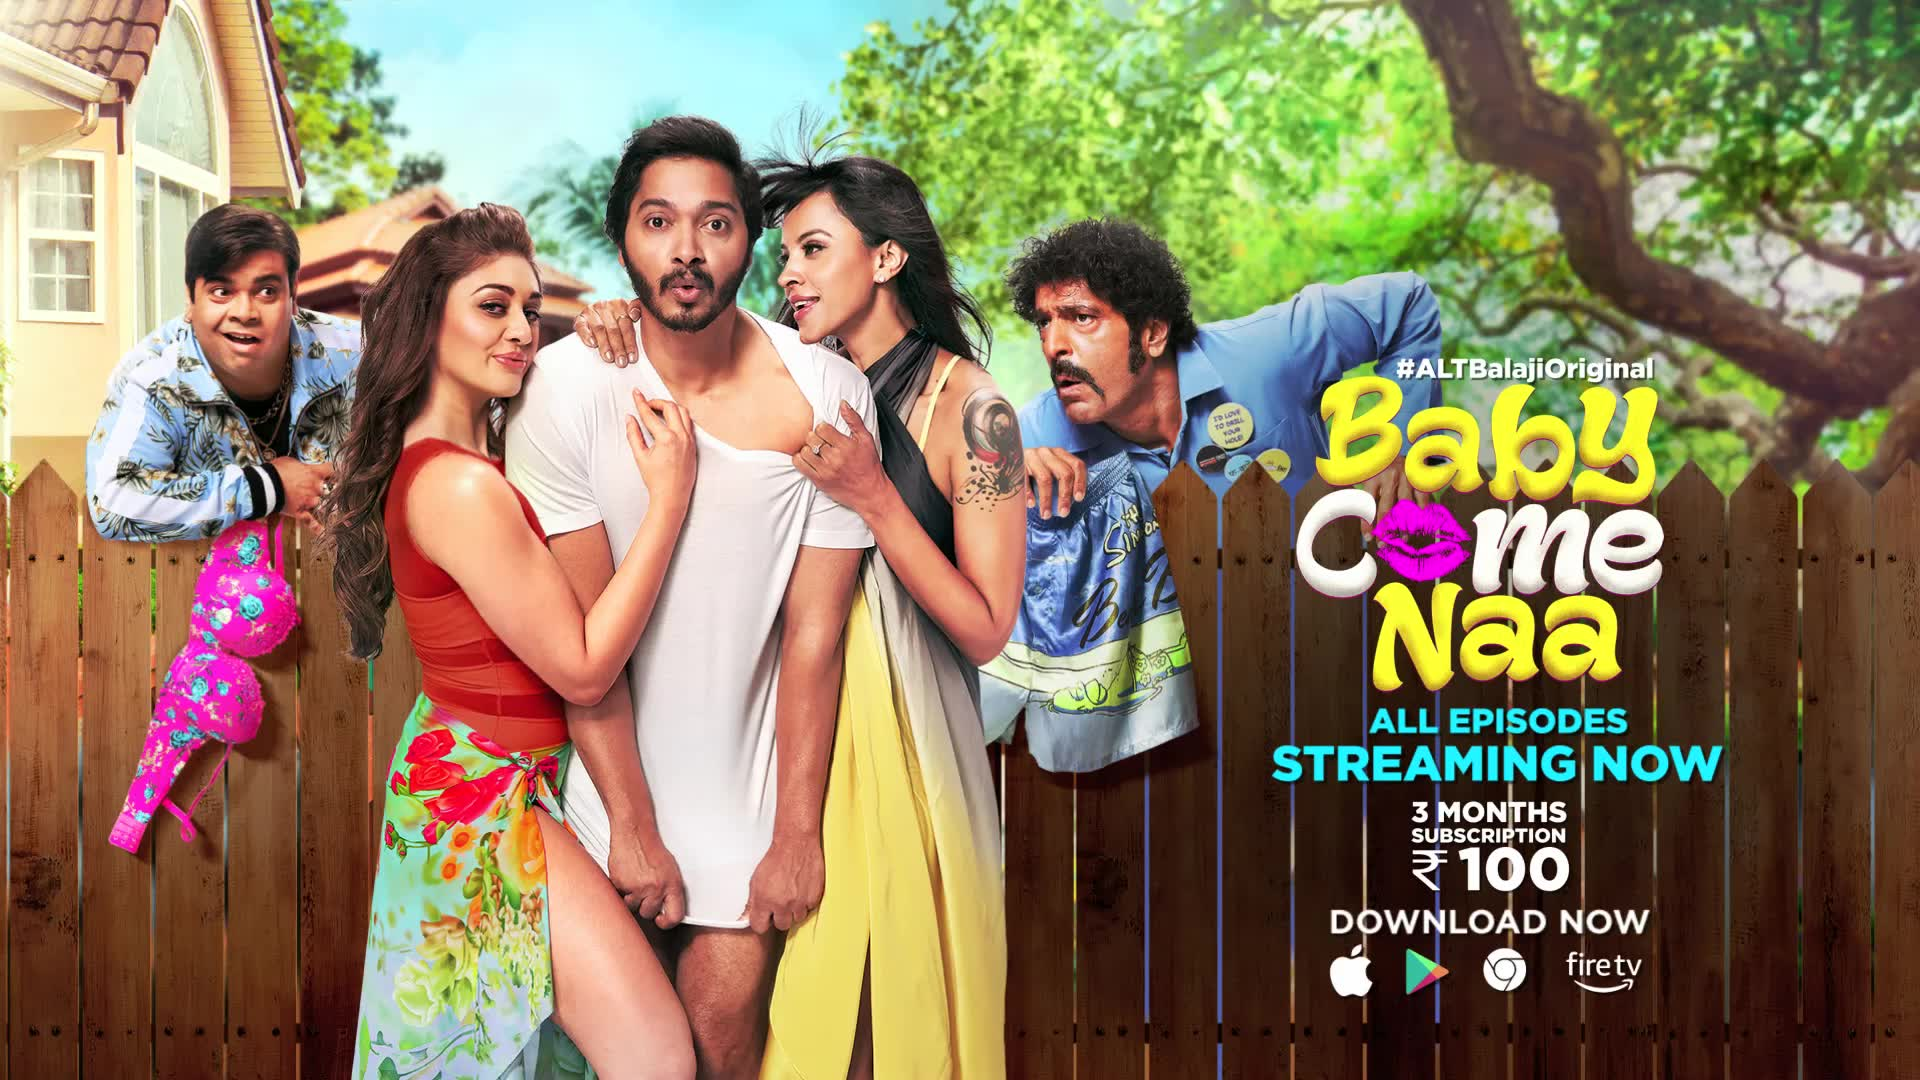 Baby Come Naa | All episodes streaming now